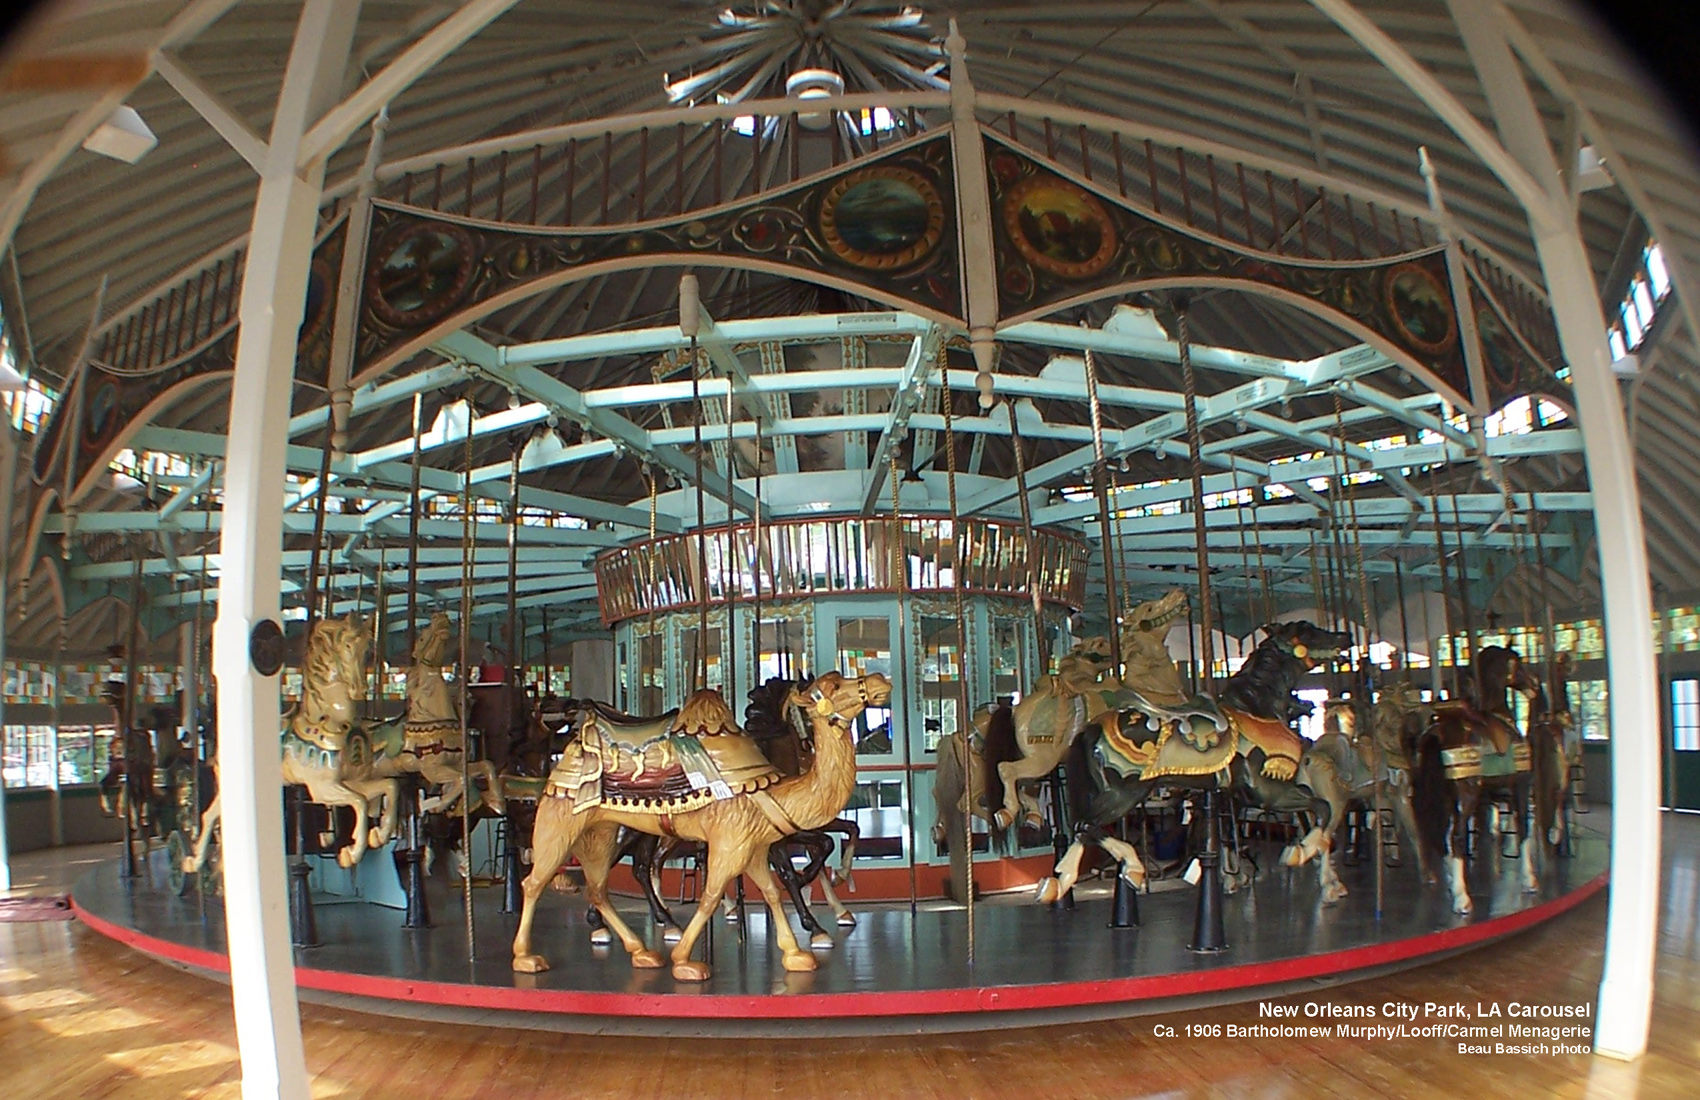 1906-New-Orleans-City-Park-carousel-CNT-center-Oct-06